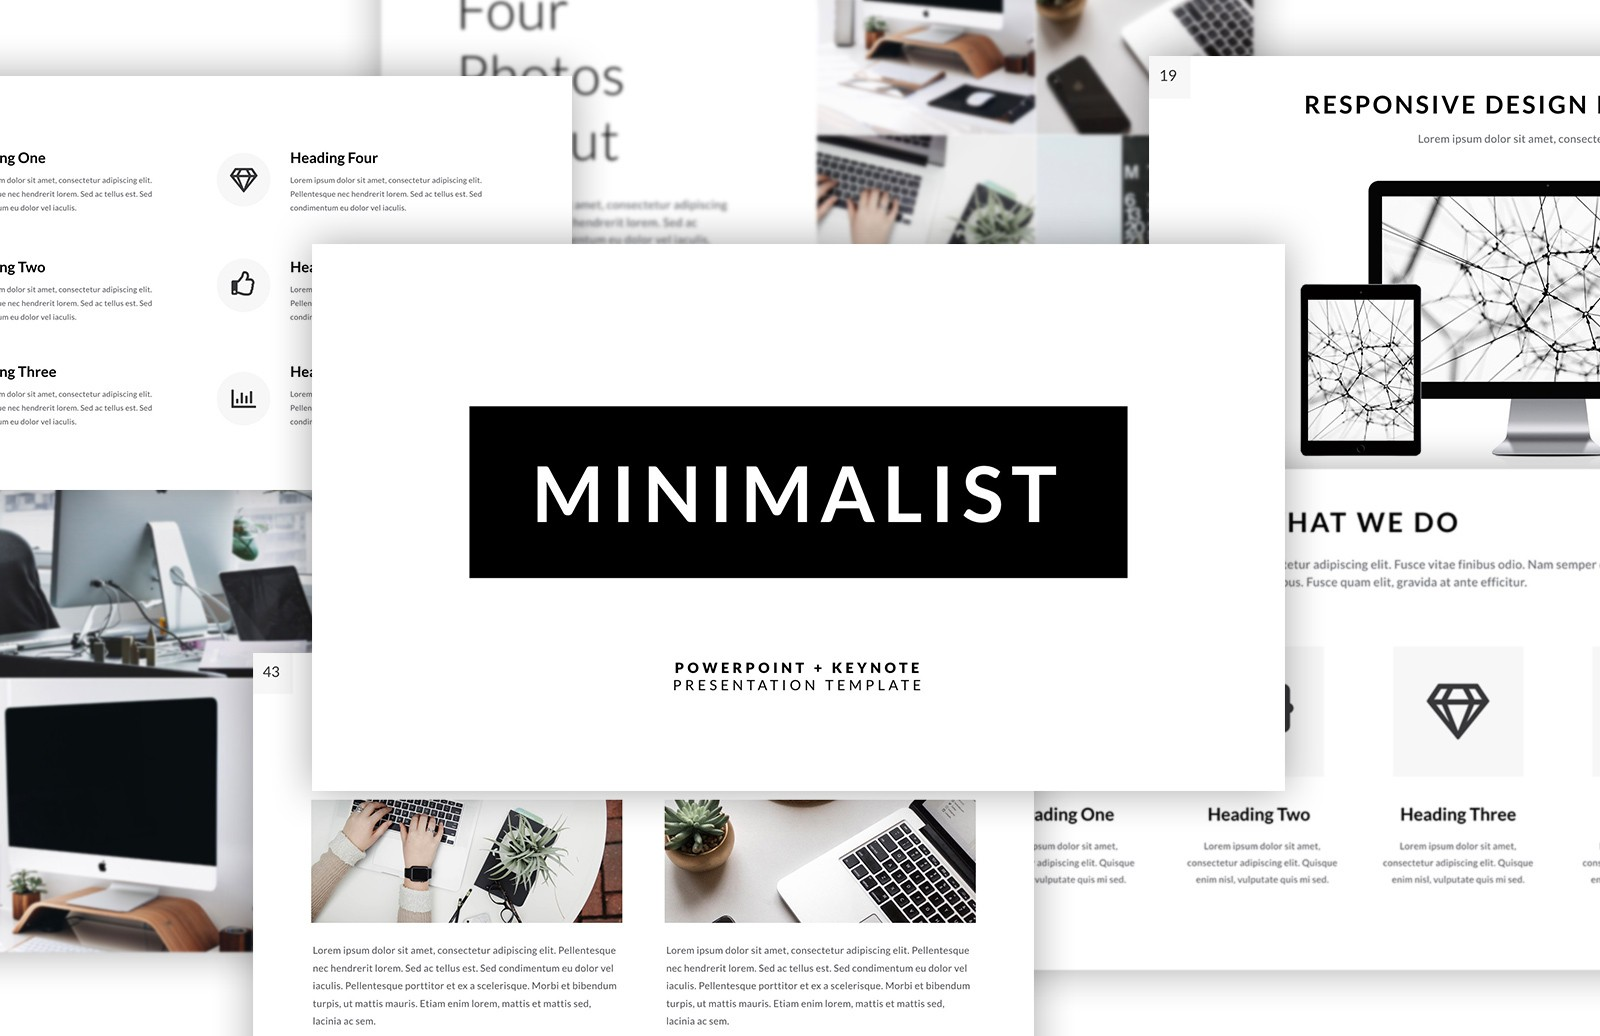 Minimalist Presentation Template Preview 1A